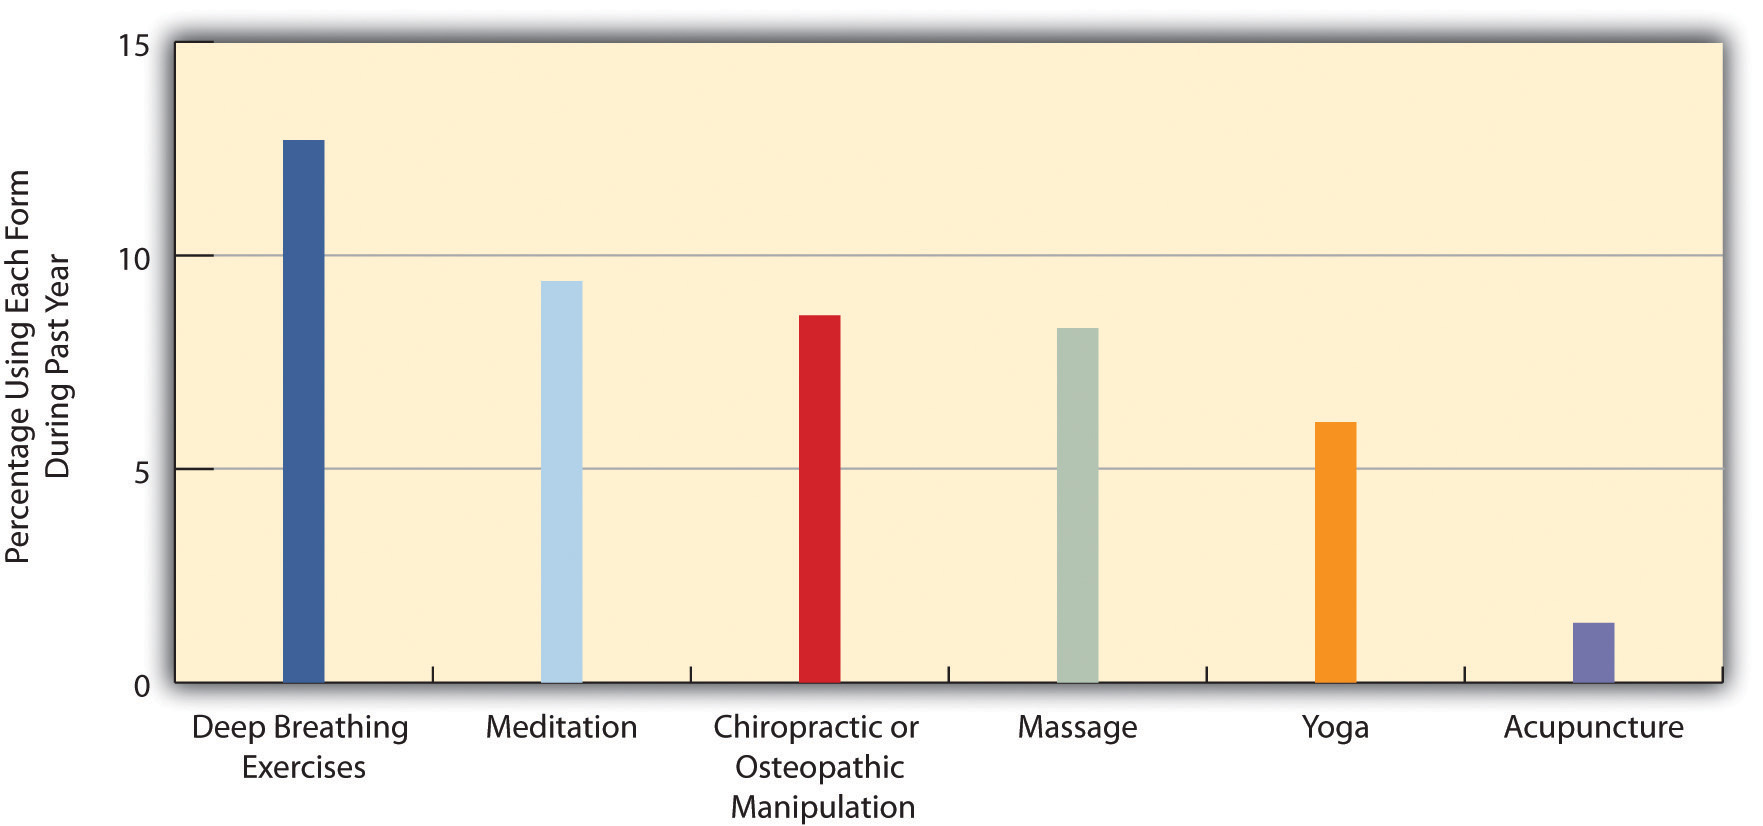 Use of selected forms of complementary and alternative medicine (CAM), 2007 (Percentage of US adults using each form during past year)